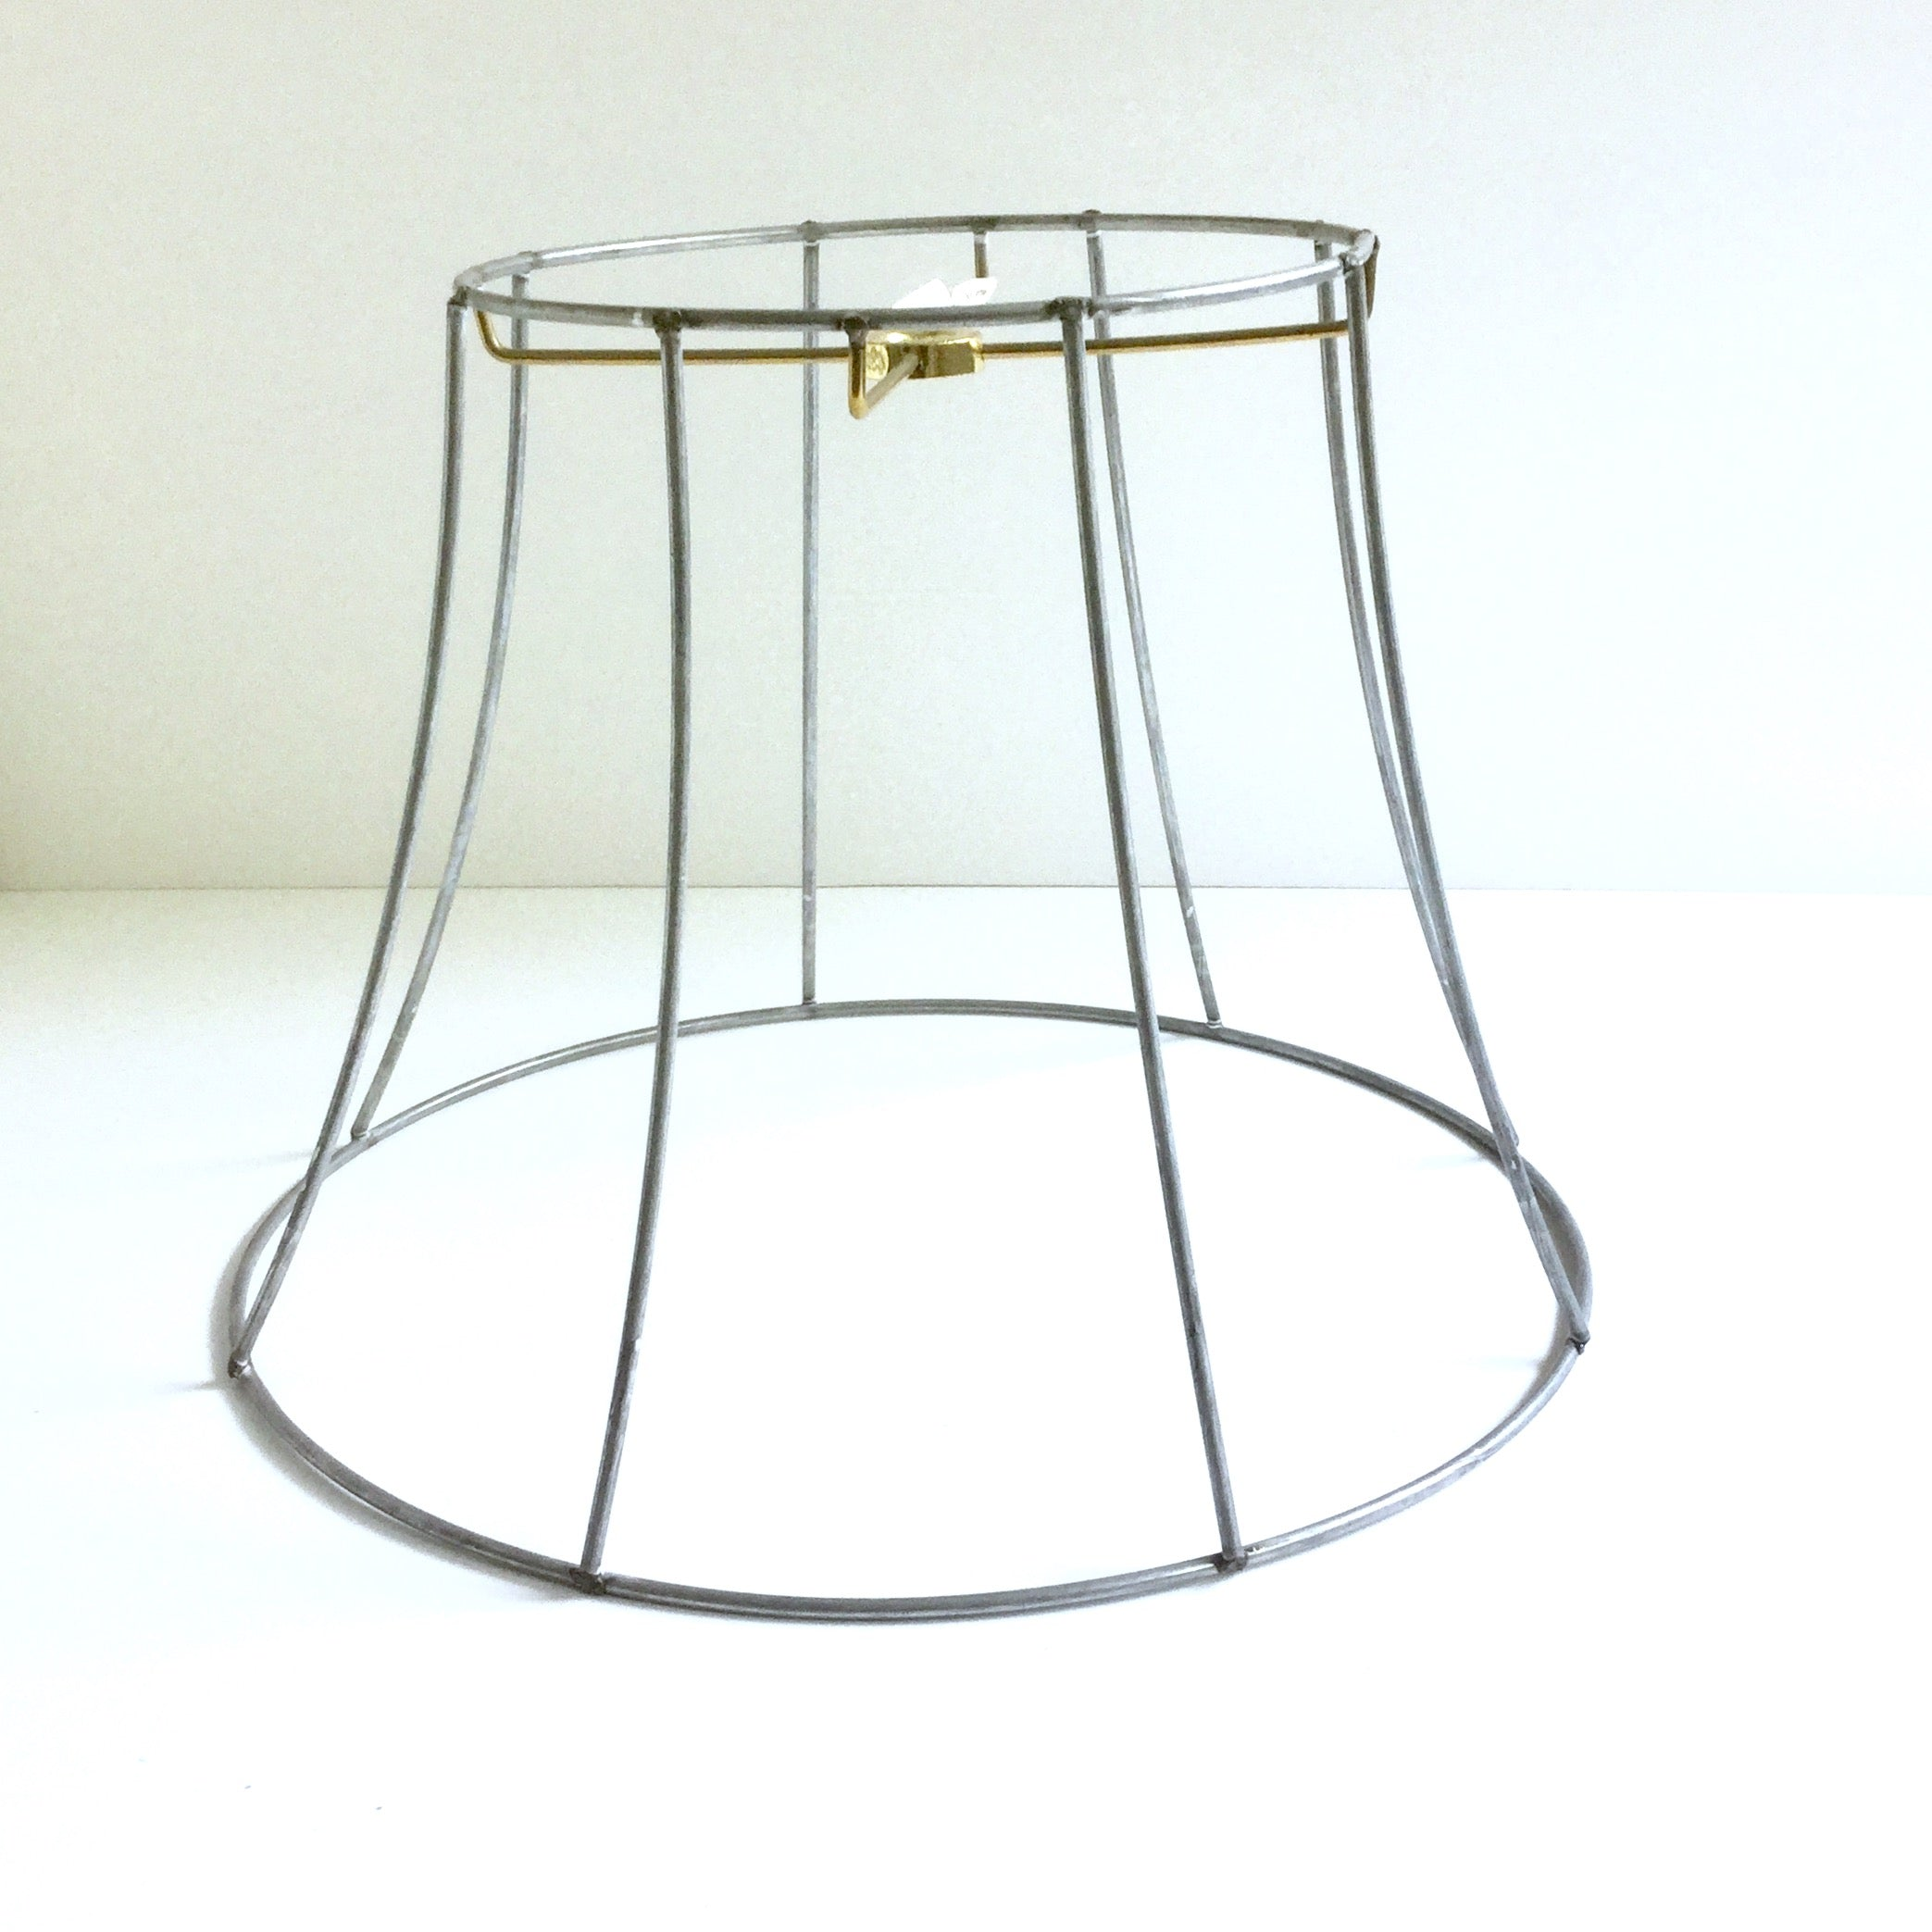 Wire lampshade frames wire center lamp shade frames wire rose mille rh rosemille com wire lampshade frames for sale wire lampshade greentooth Gallery